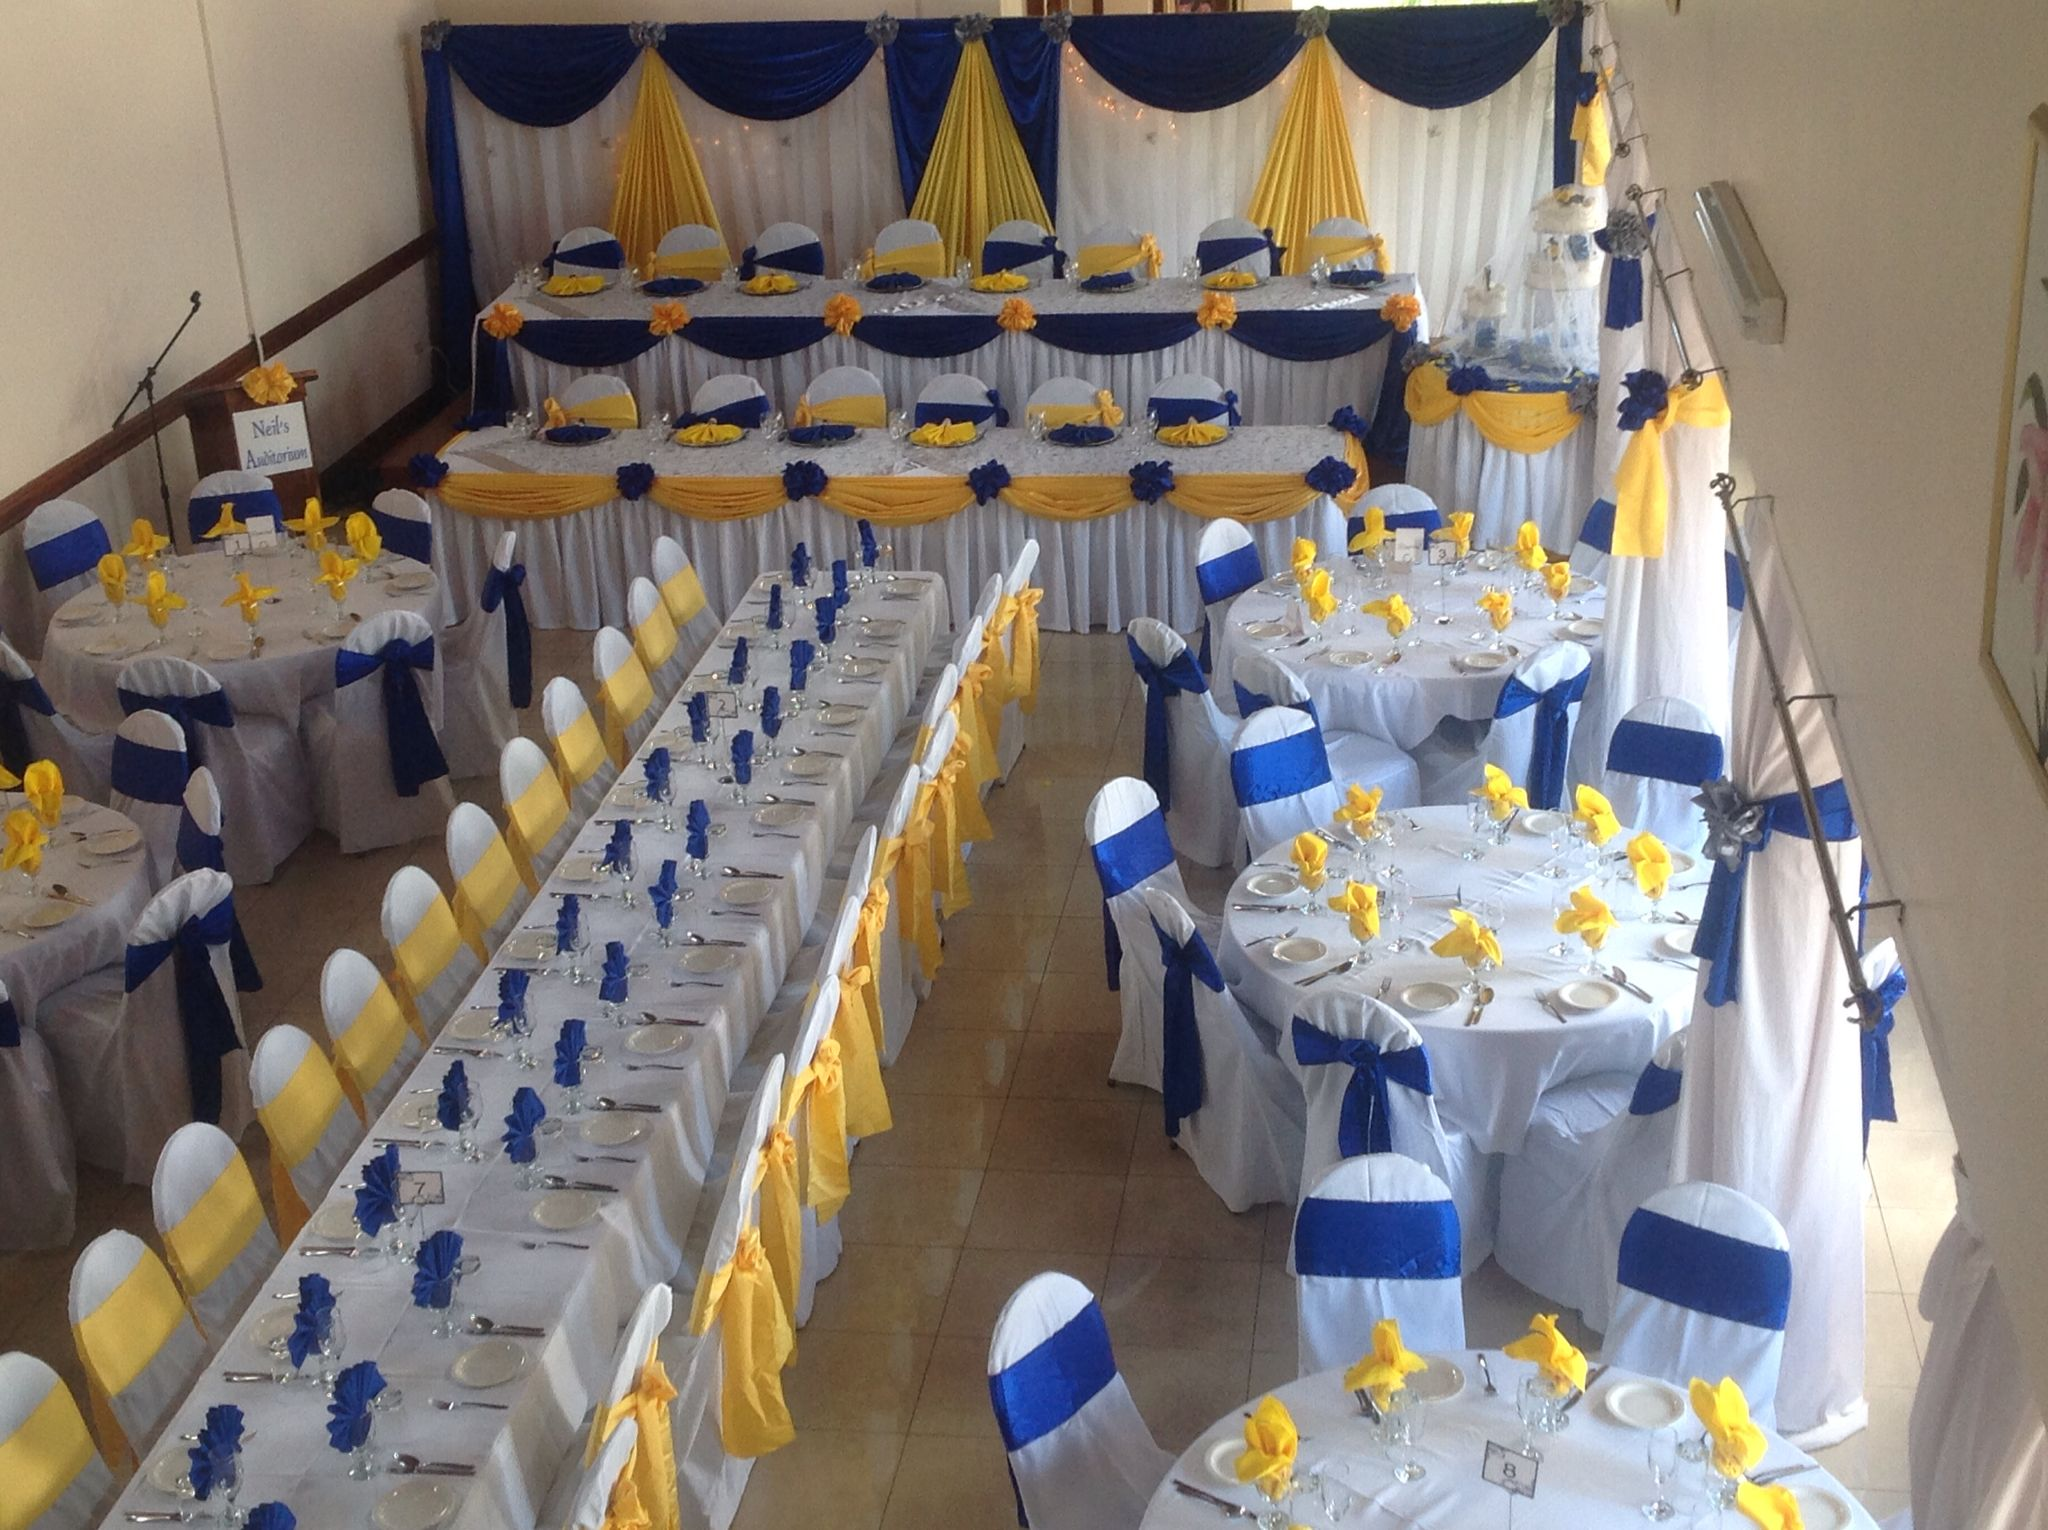 Royal blue and yellow wedding decor Wedding decor Pinterest